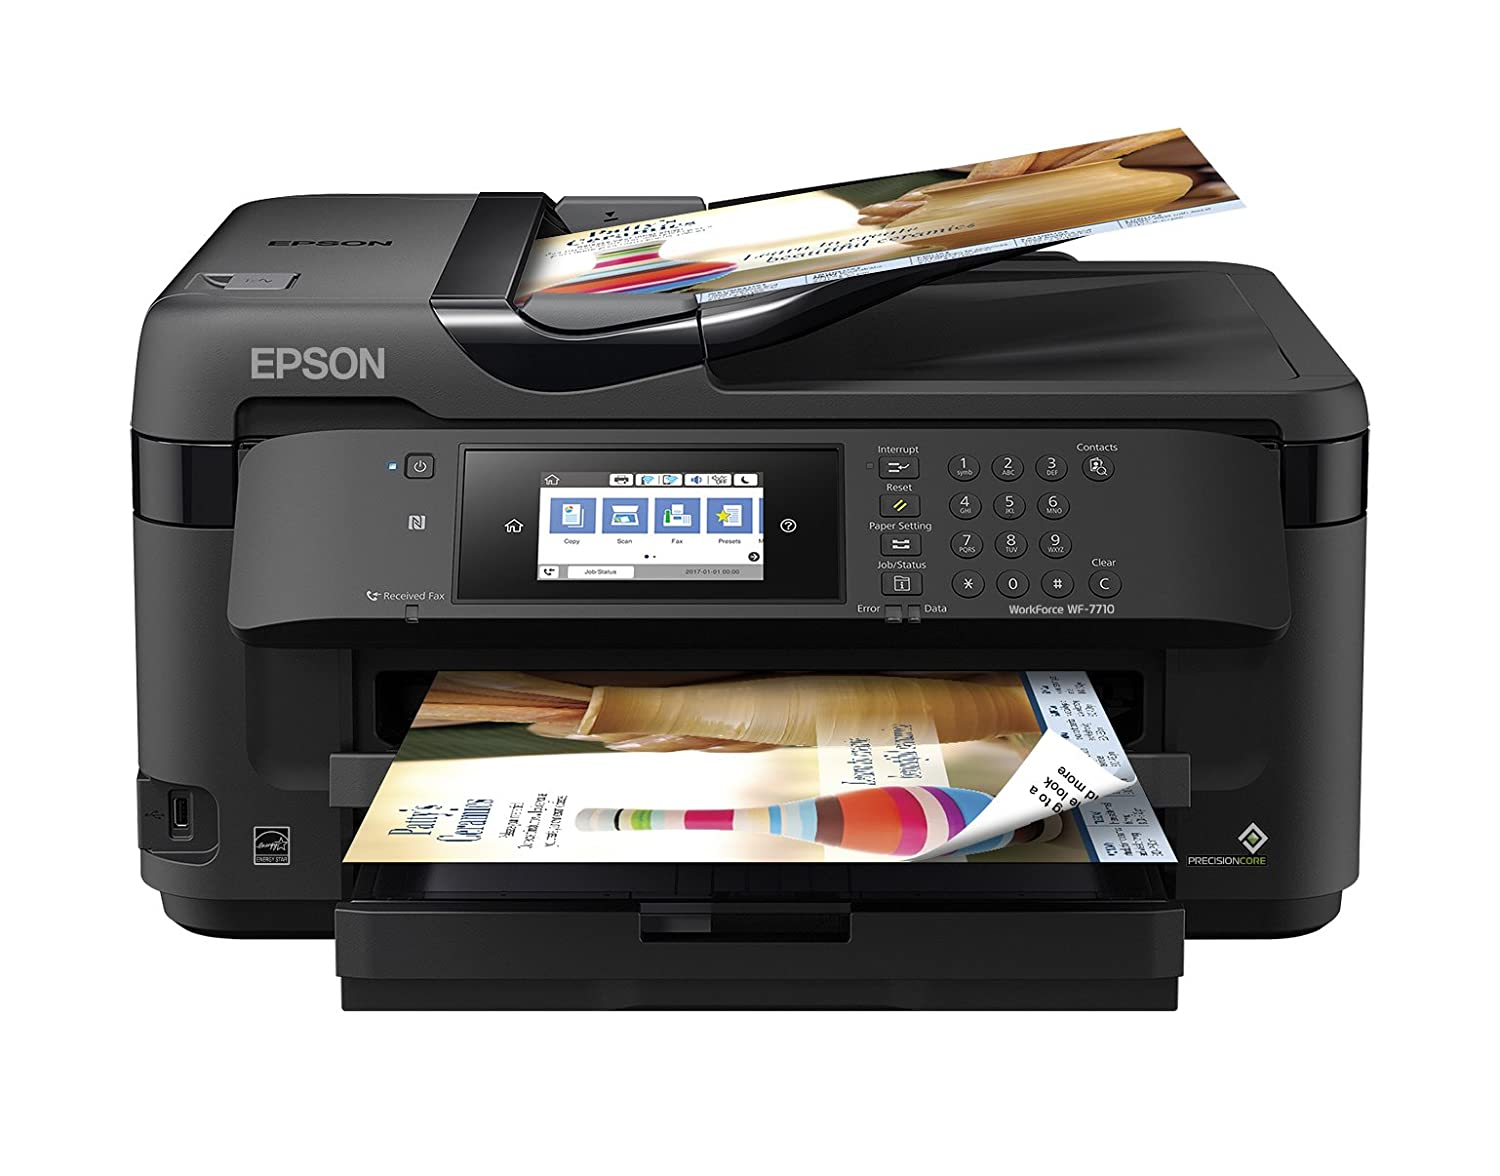 Top 11 Best Printers for Teachers under $100 Reviews 7